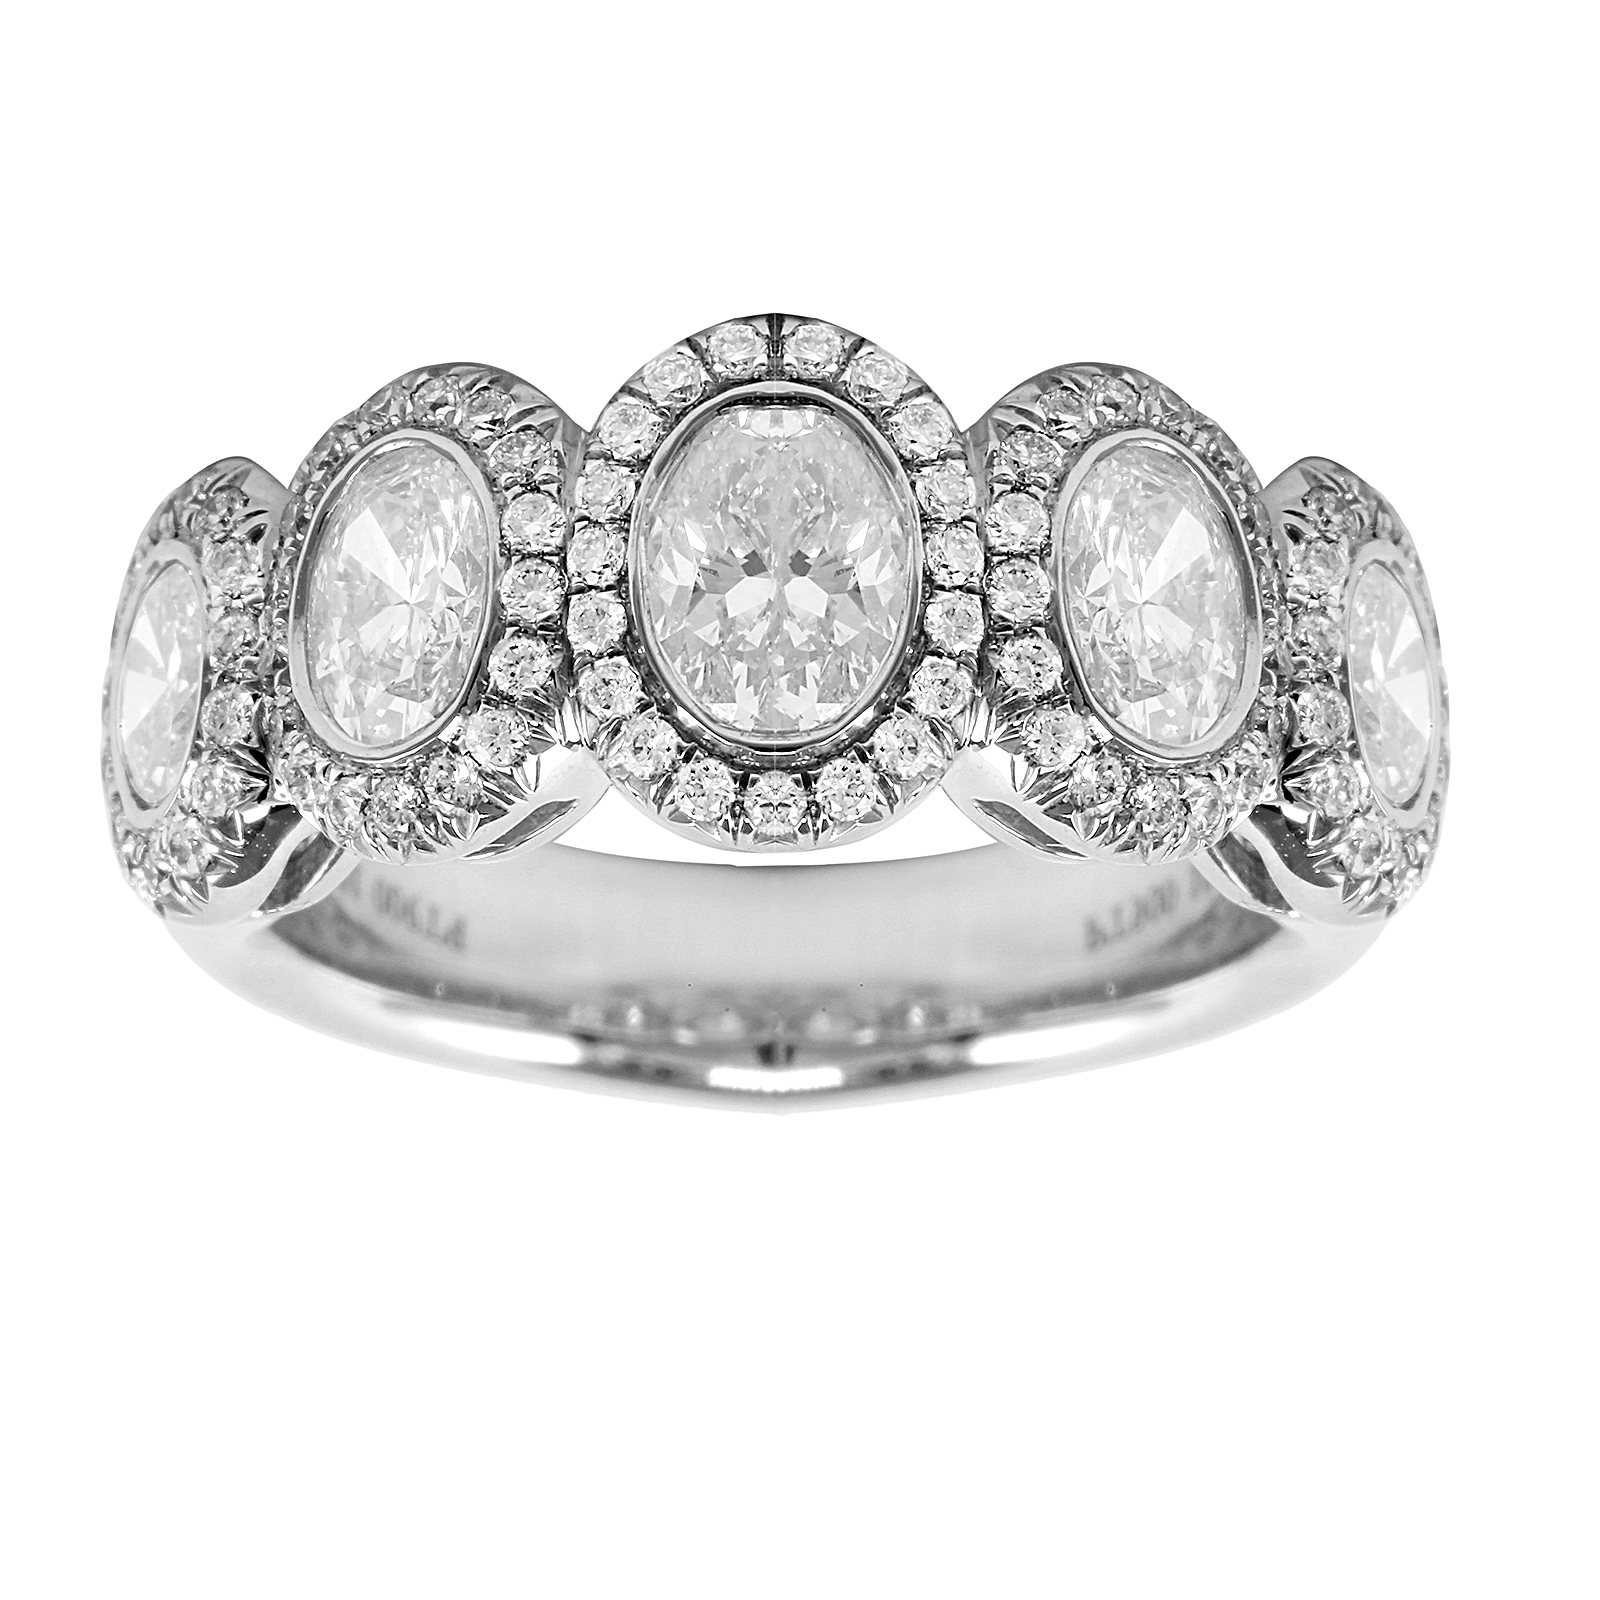 Platinum 1.66ct Oval Bezel Eternity Ring - Size M